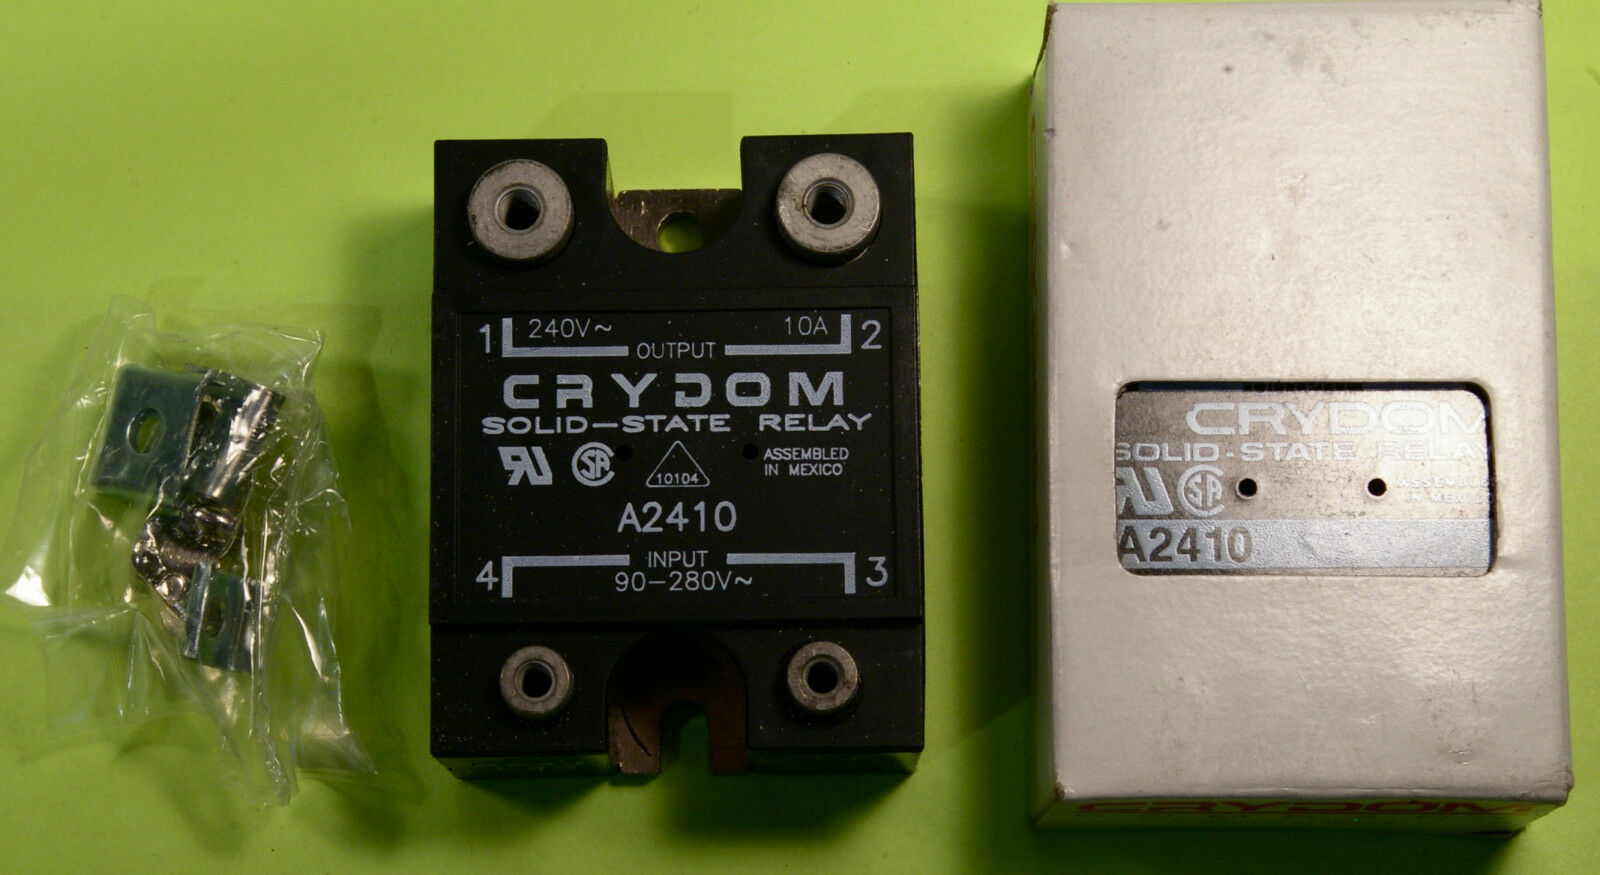 Crydom A2410 Solid State Relay 240vac 10a Output 90 280vac Input New Ac 1 Of 1free Shipping